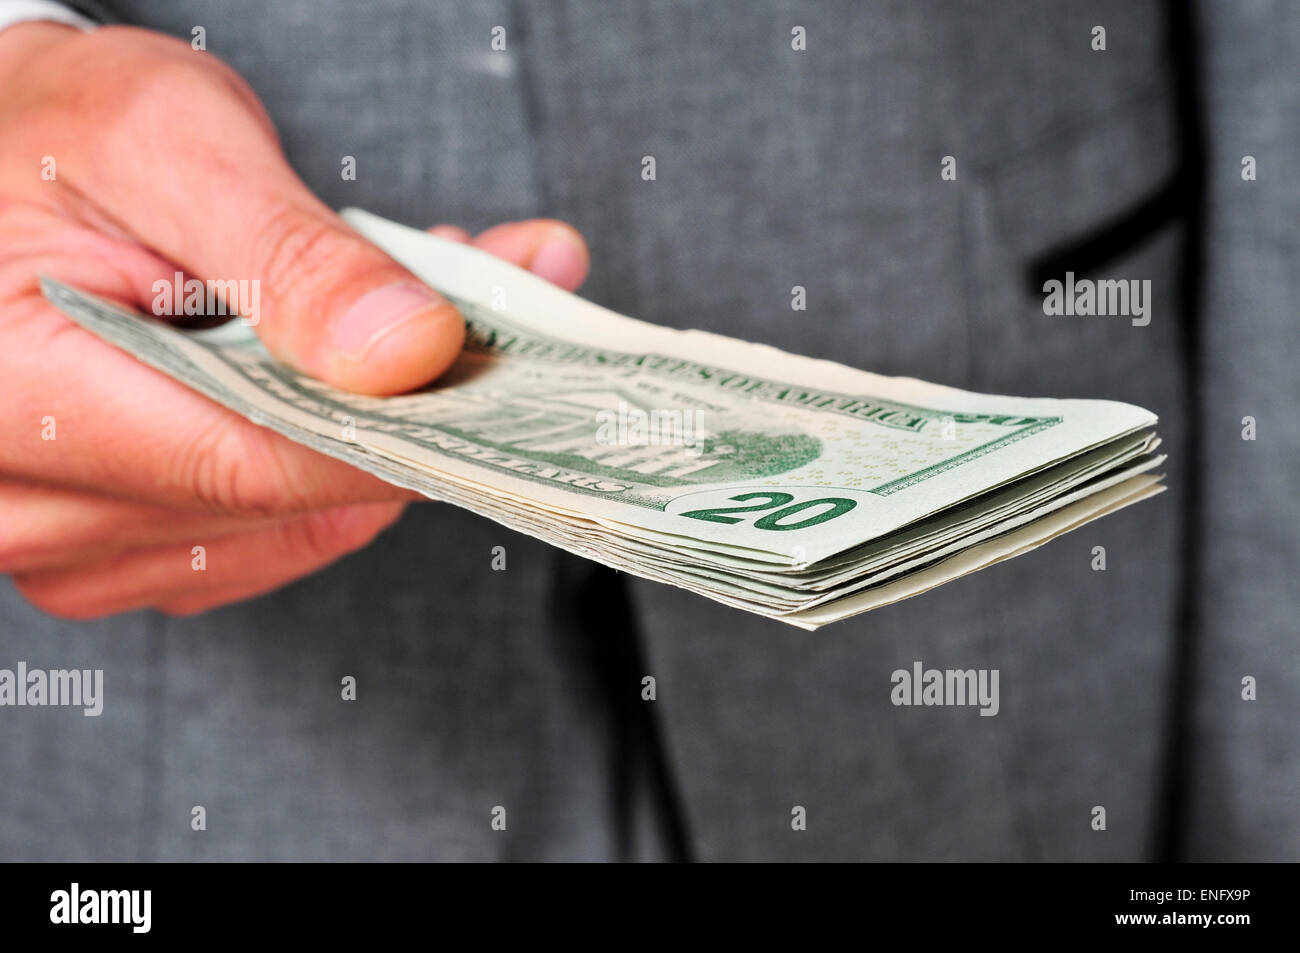 a man wearing a suit with a wad of dollars in his hand - Stock Image